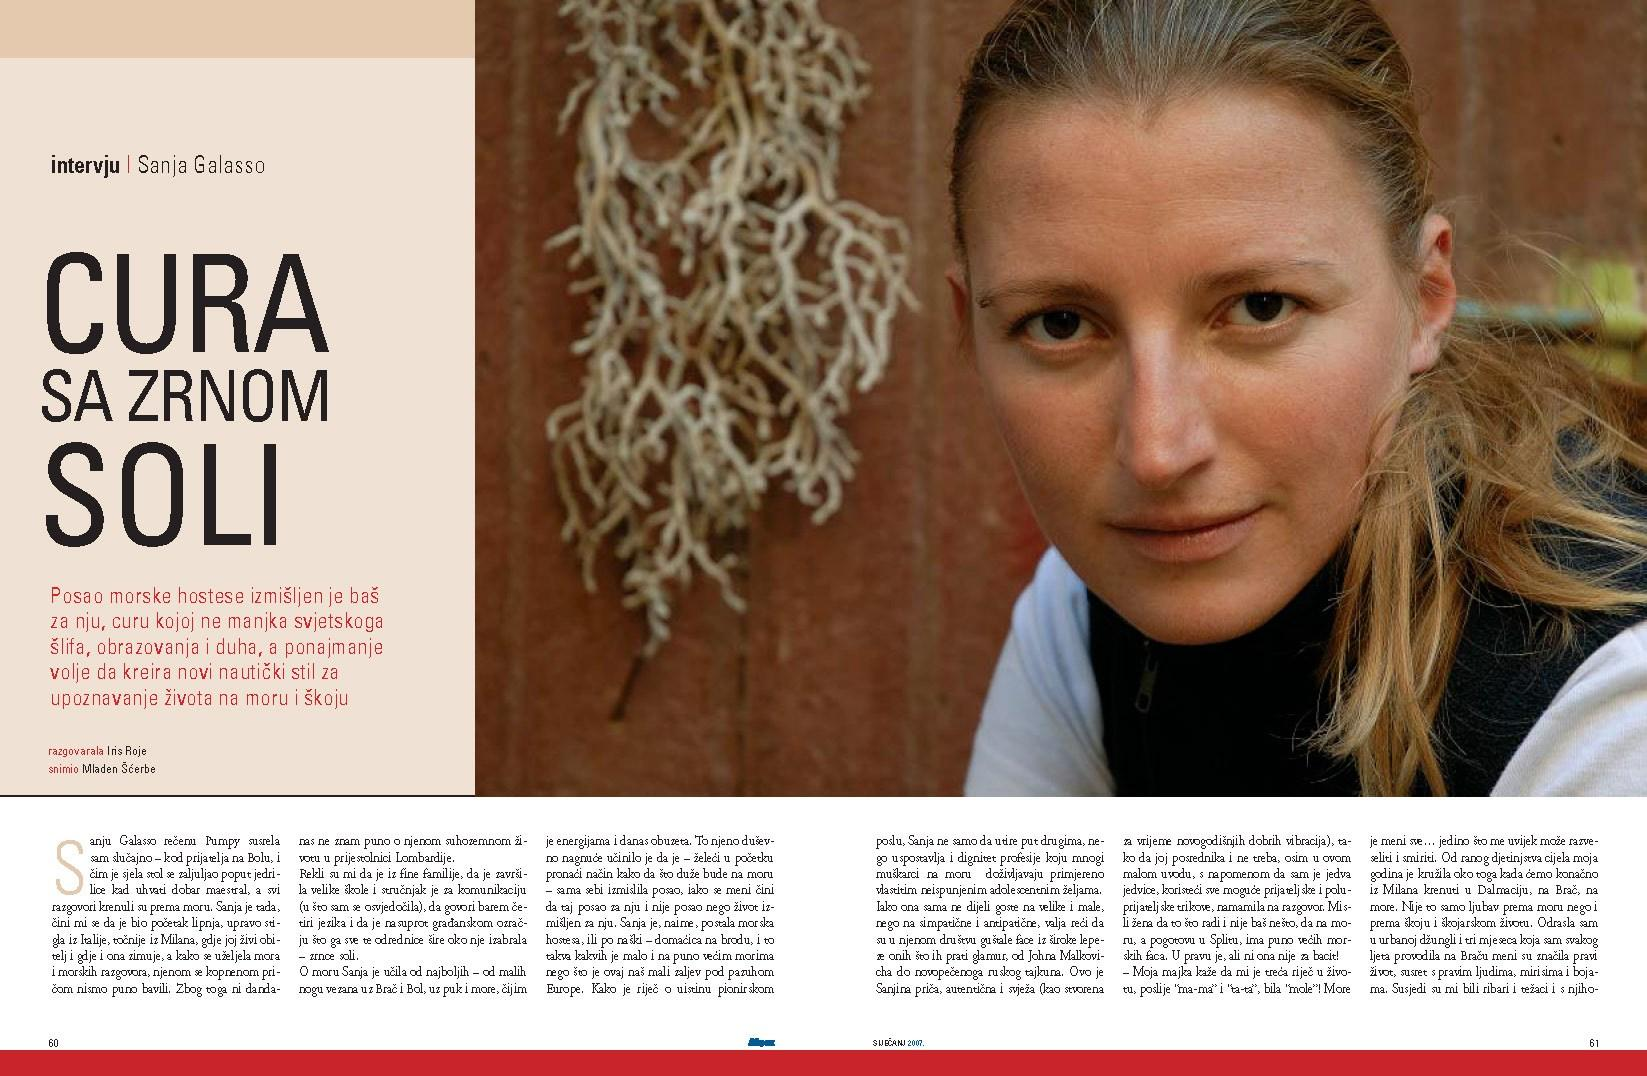 Interview with Sanja, published in magazine More (Sea)